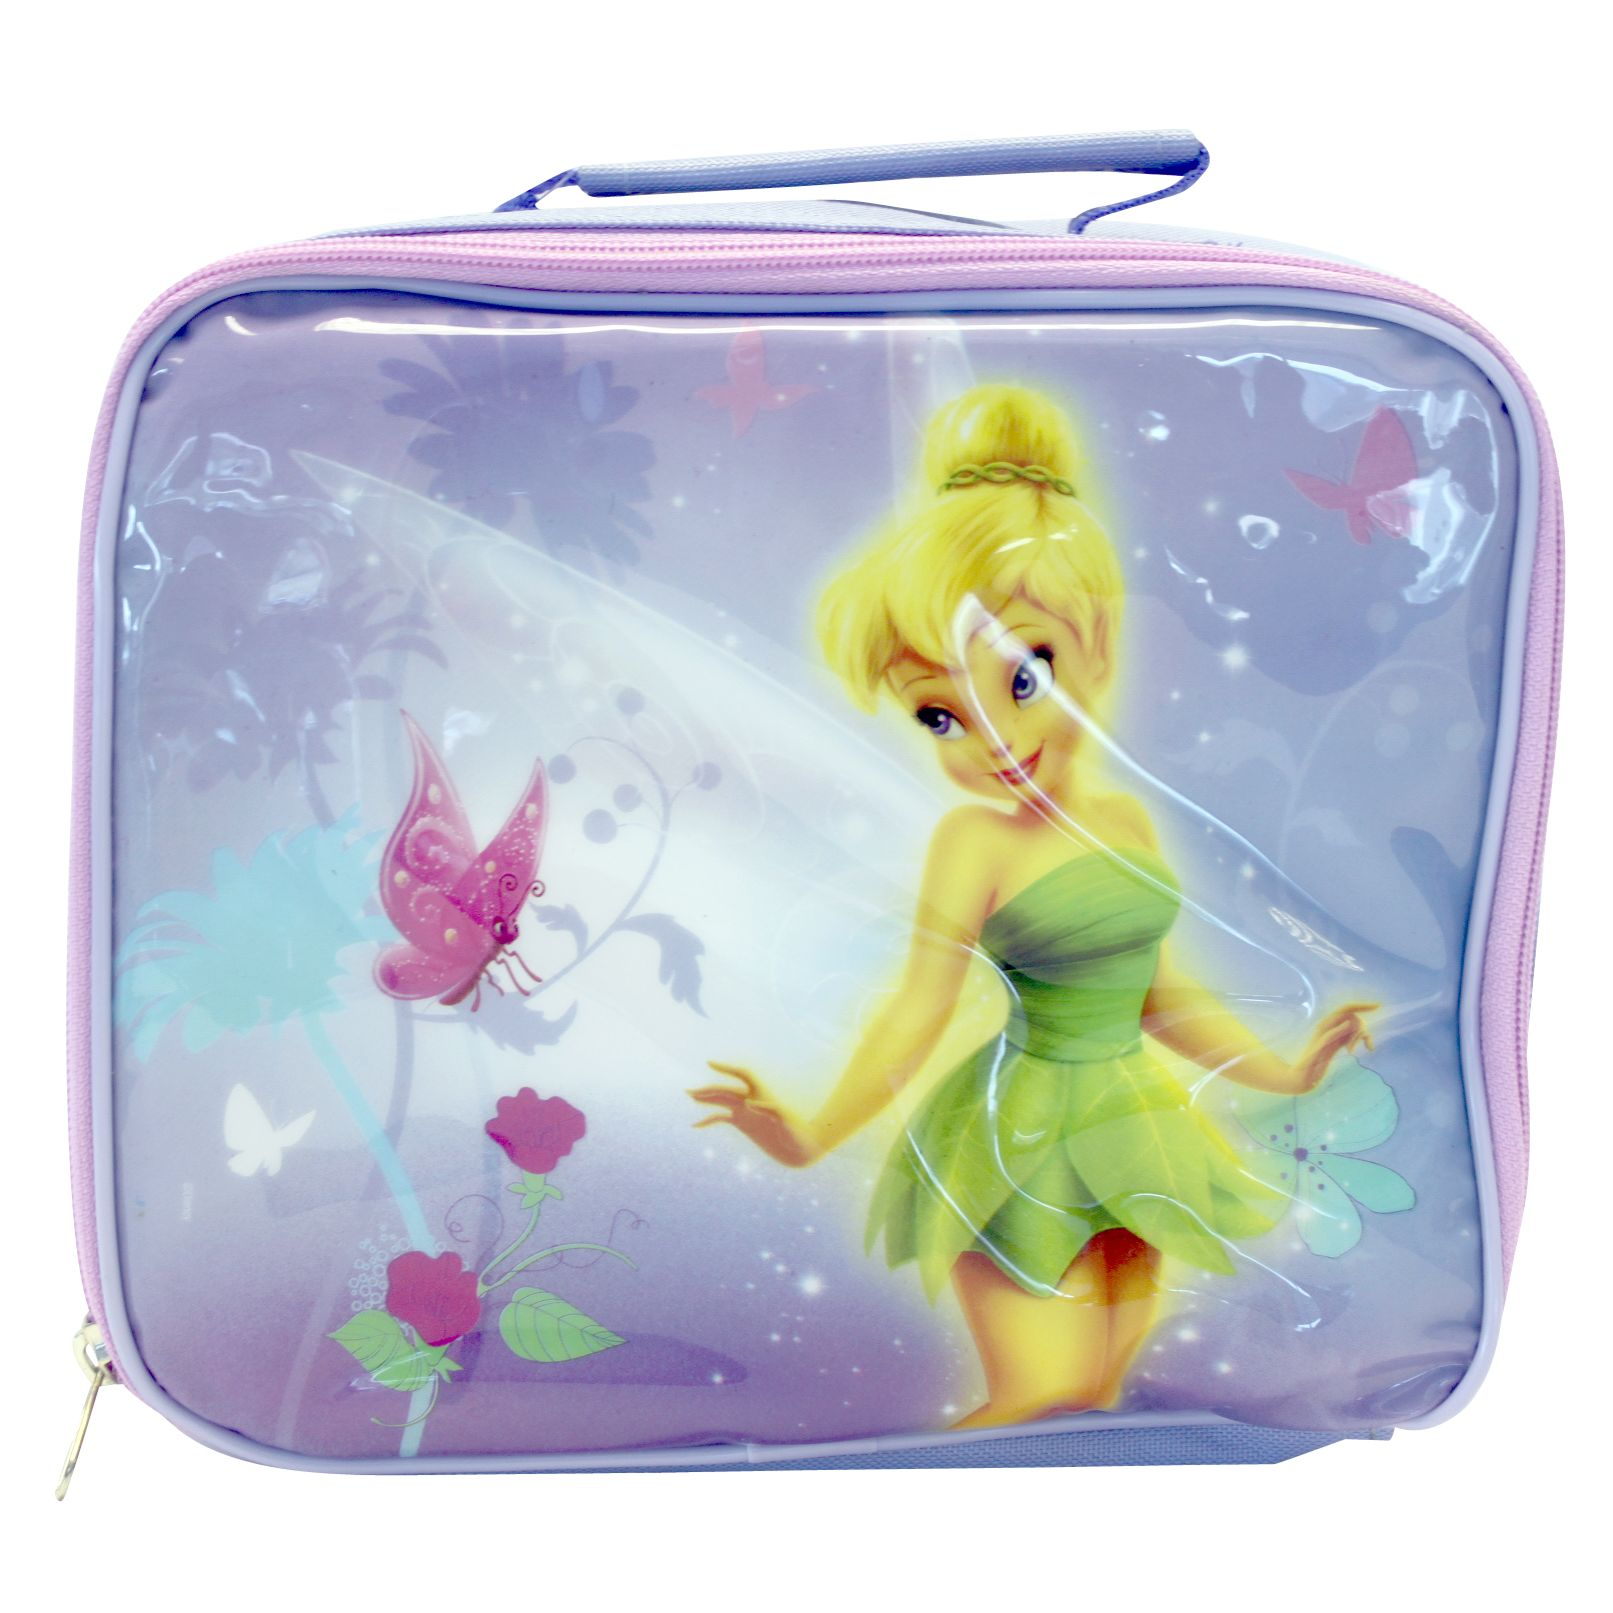 Tinkerbell Lunch Bag